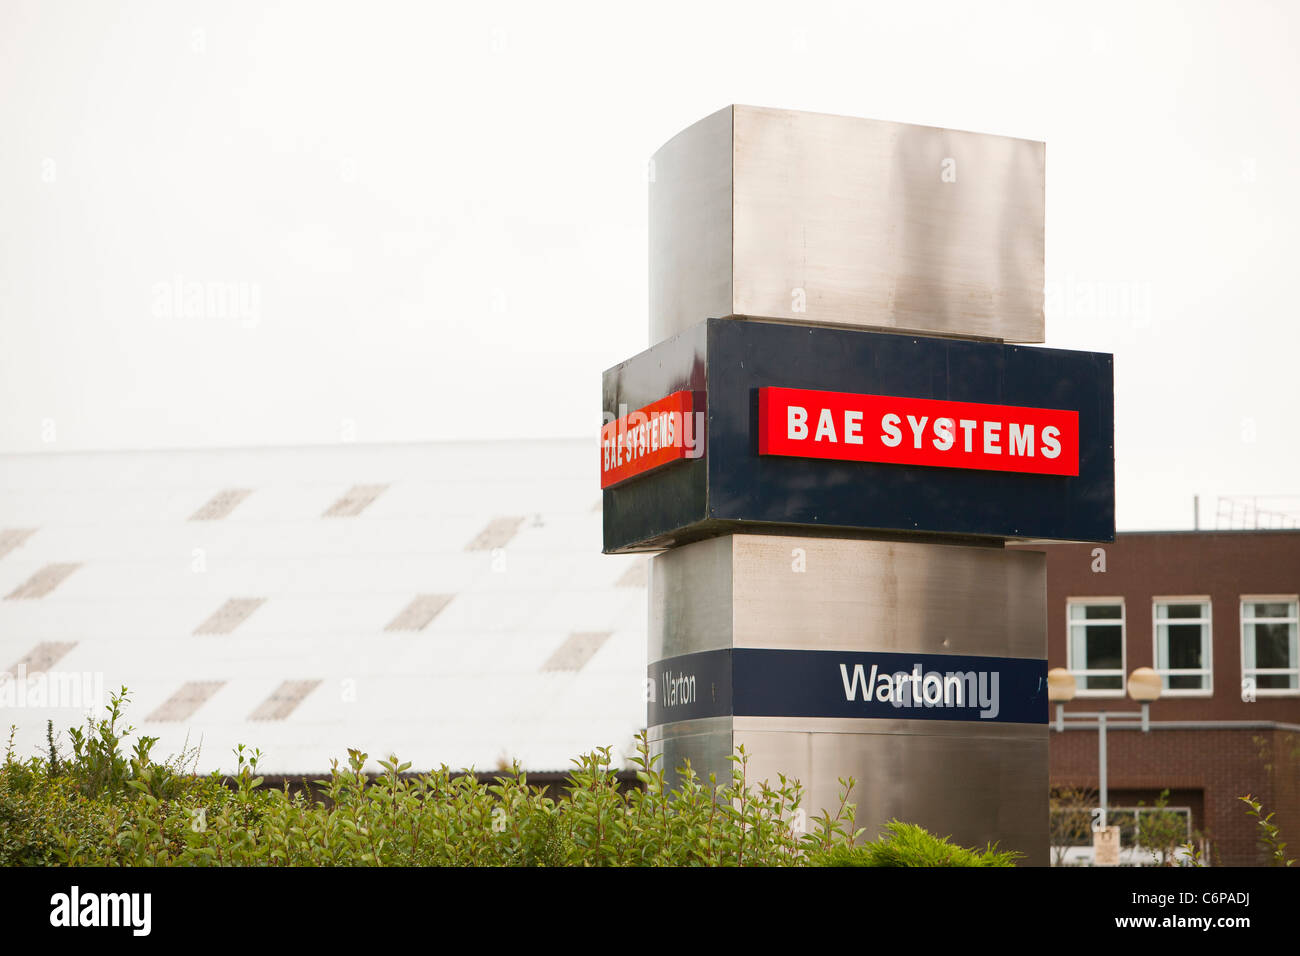 BAE systems plant at Warton in Lancashire, UK. - Stock Image